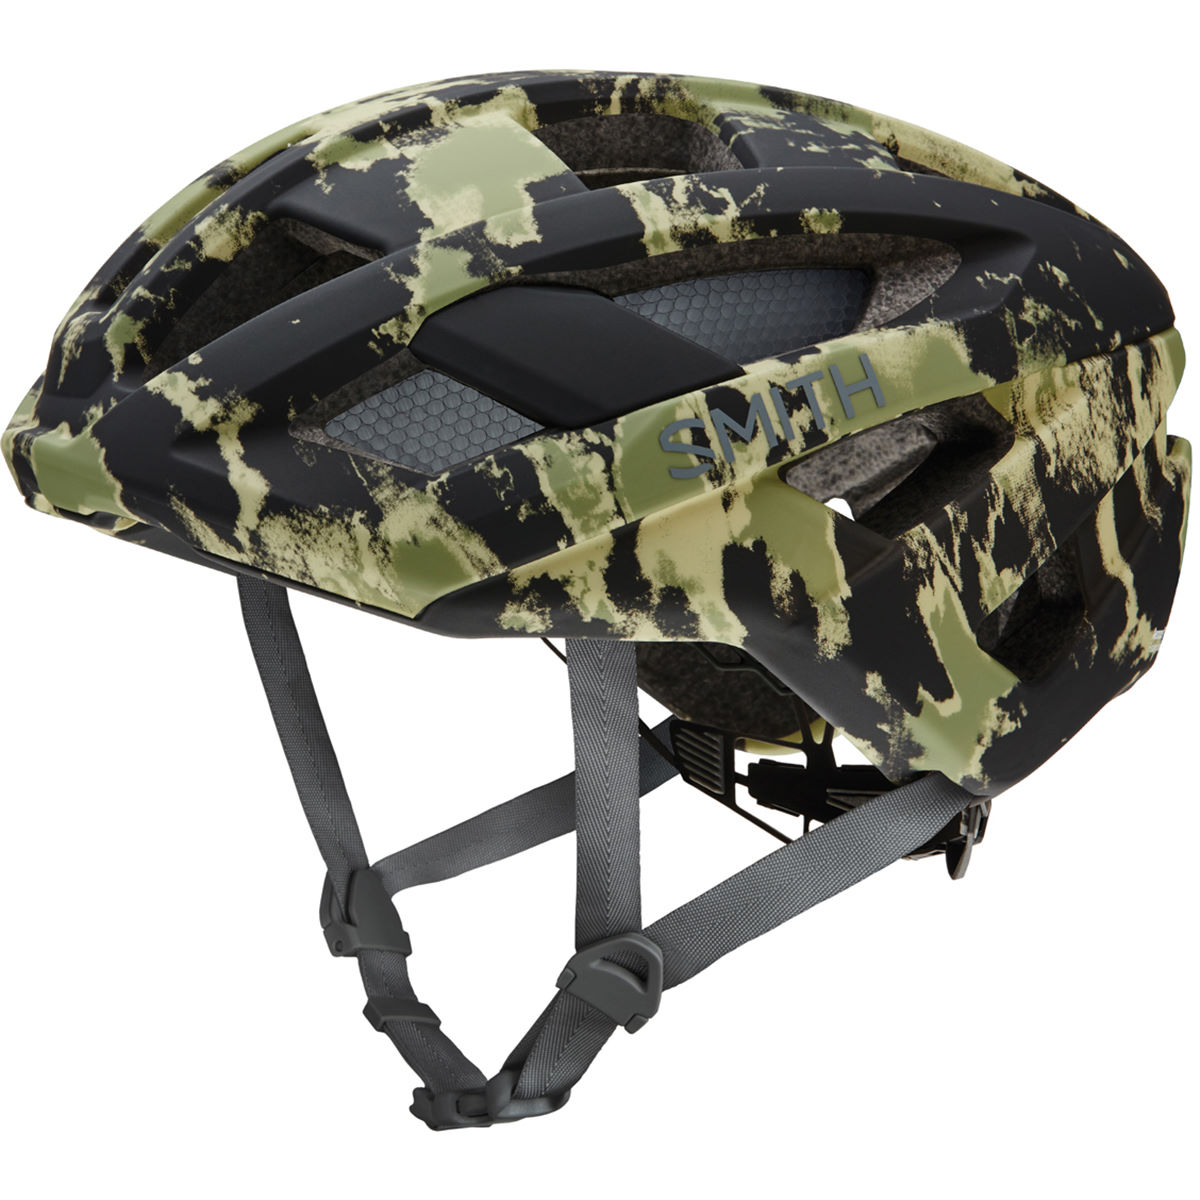 Smith Route MIPS Helmet - Cascos de carretera